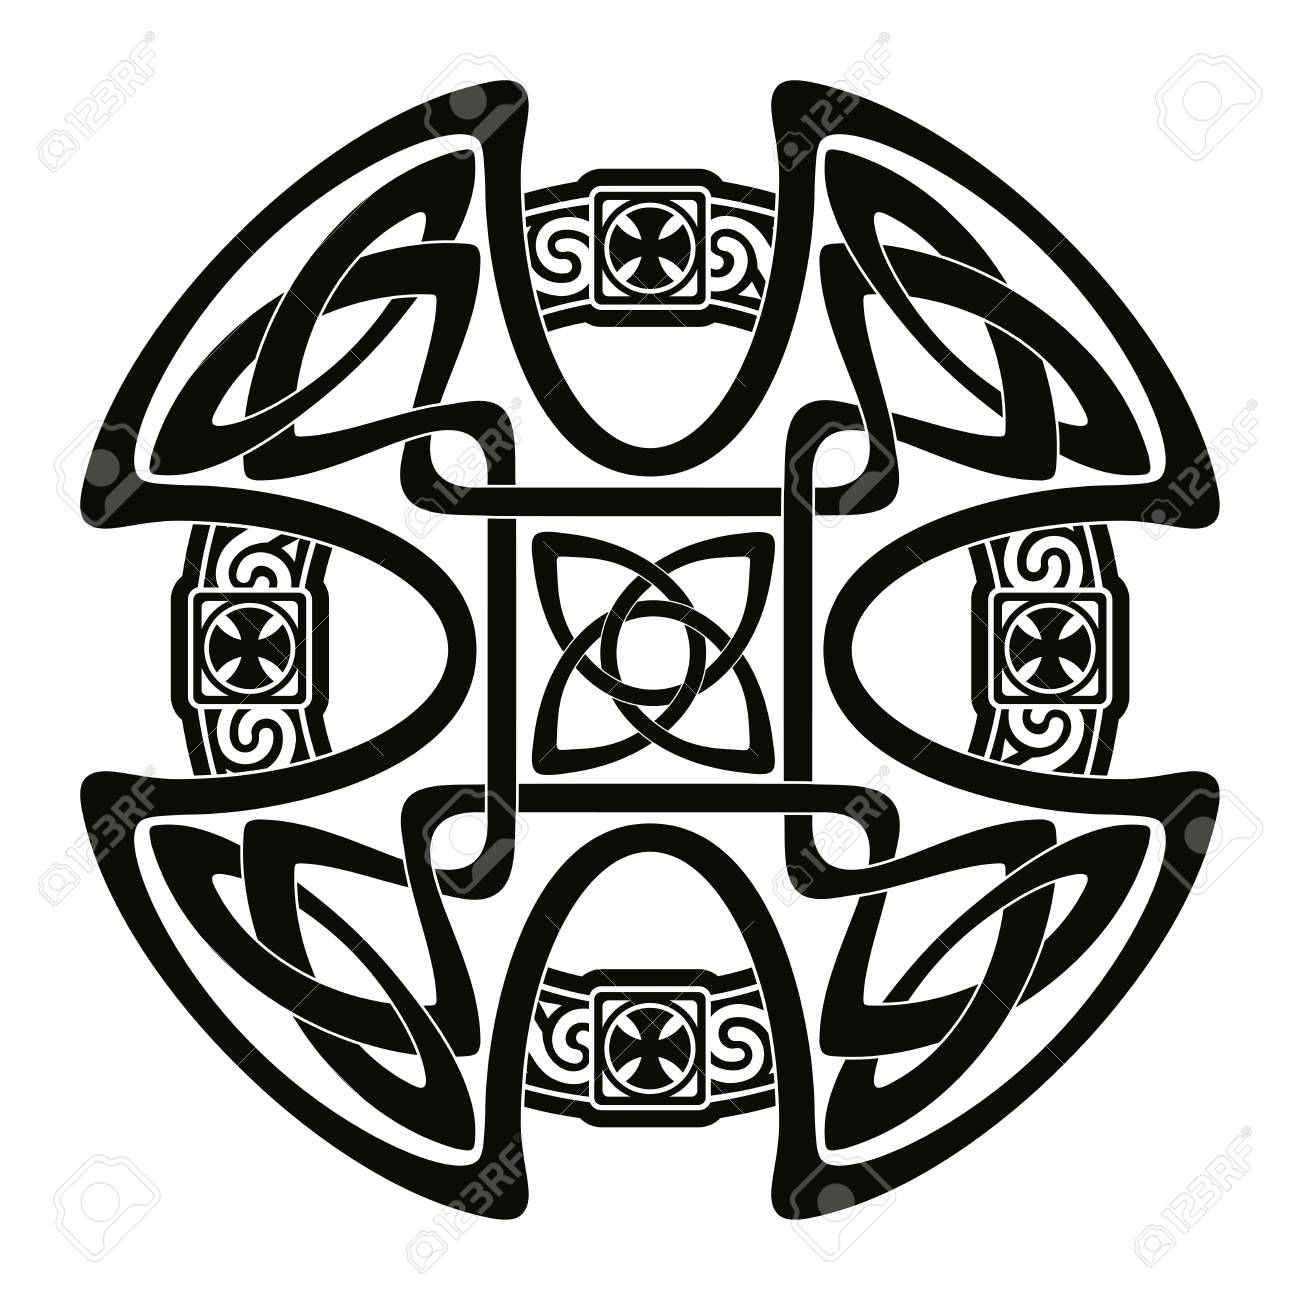 celtic cross vector illustration royalty free cliparts vectors and rh 123rf com ornate celtic cross vector celtic cross vector free download